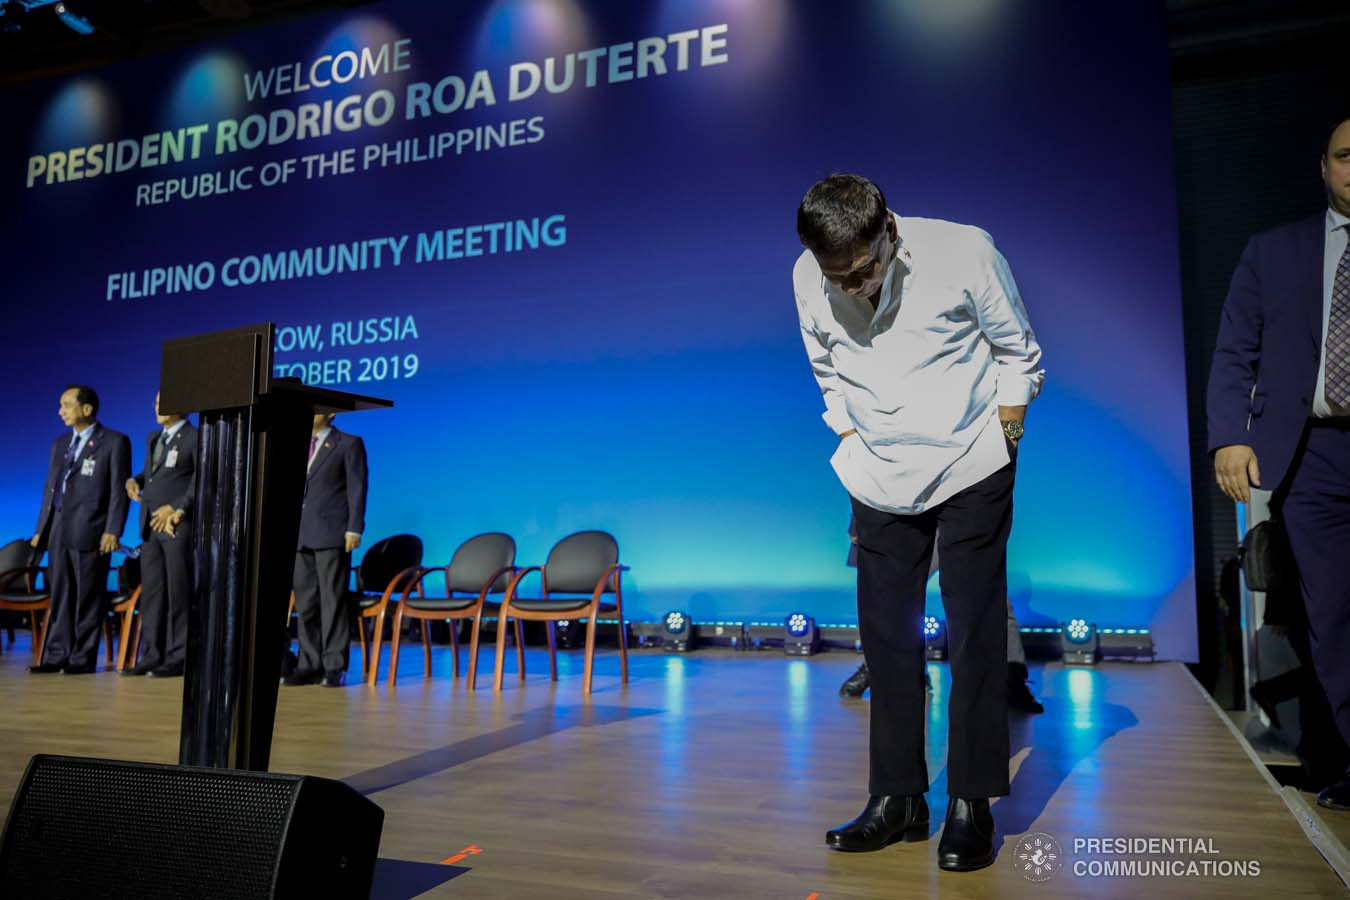 President Rodrigo Roa Duterte takes a bow before the Filipinos based in Russia who met with the President at the Exhibition of Achievements of National Economy (VDNH) in Moscow on October 5, 2019. ROBINSON NIÑAL JR./PRESIDENTIAL PHOTO